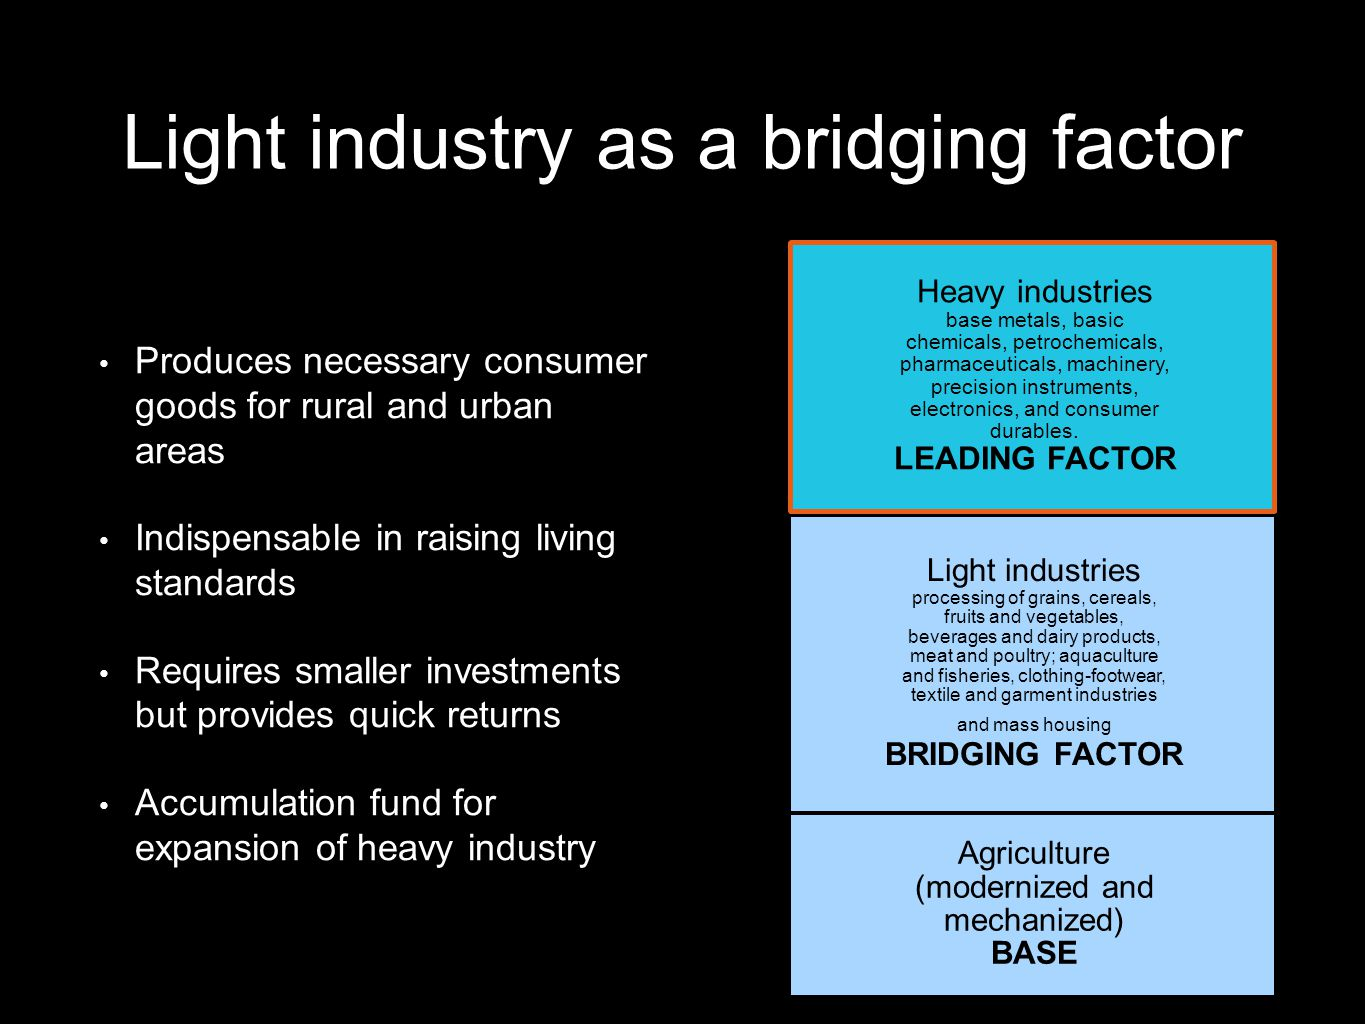 Light industry as a bridging factor Produces necessary consumer goods for rural and urban areas Indispensable in raising living standards Requires smaller investments but provides quick returns Accumulation fund for expansion of heavy industry Heavy industries base metals, basic chemicals, petrochemicals, pharmaceuticals, machinery, precision instruments, electronics, and consumer durables.